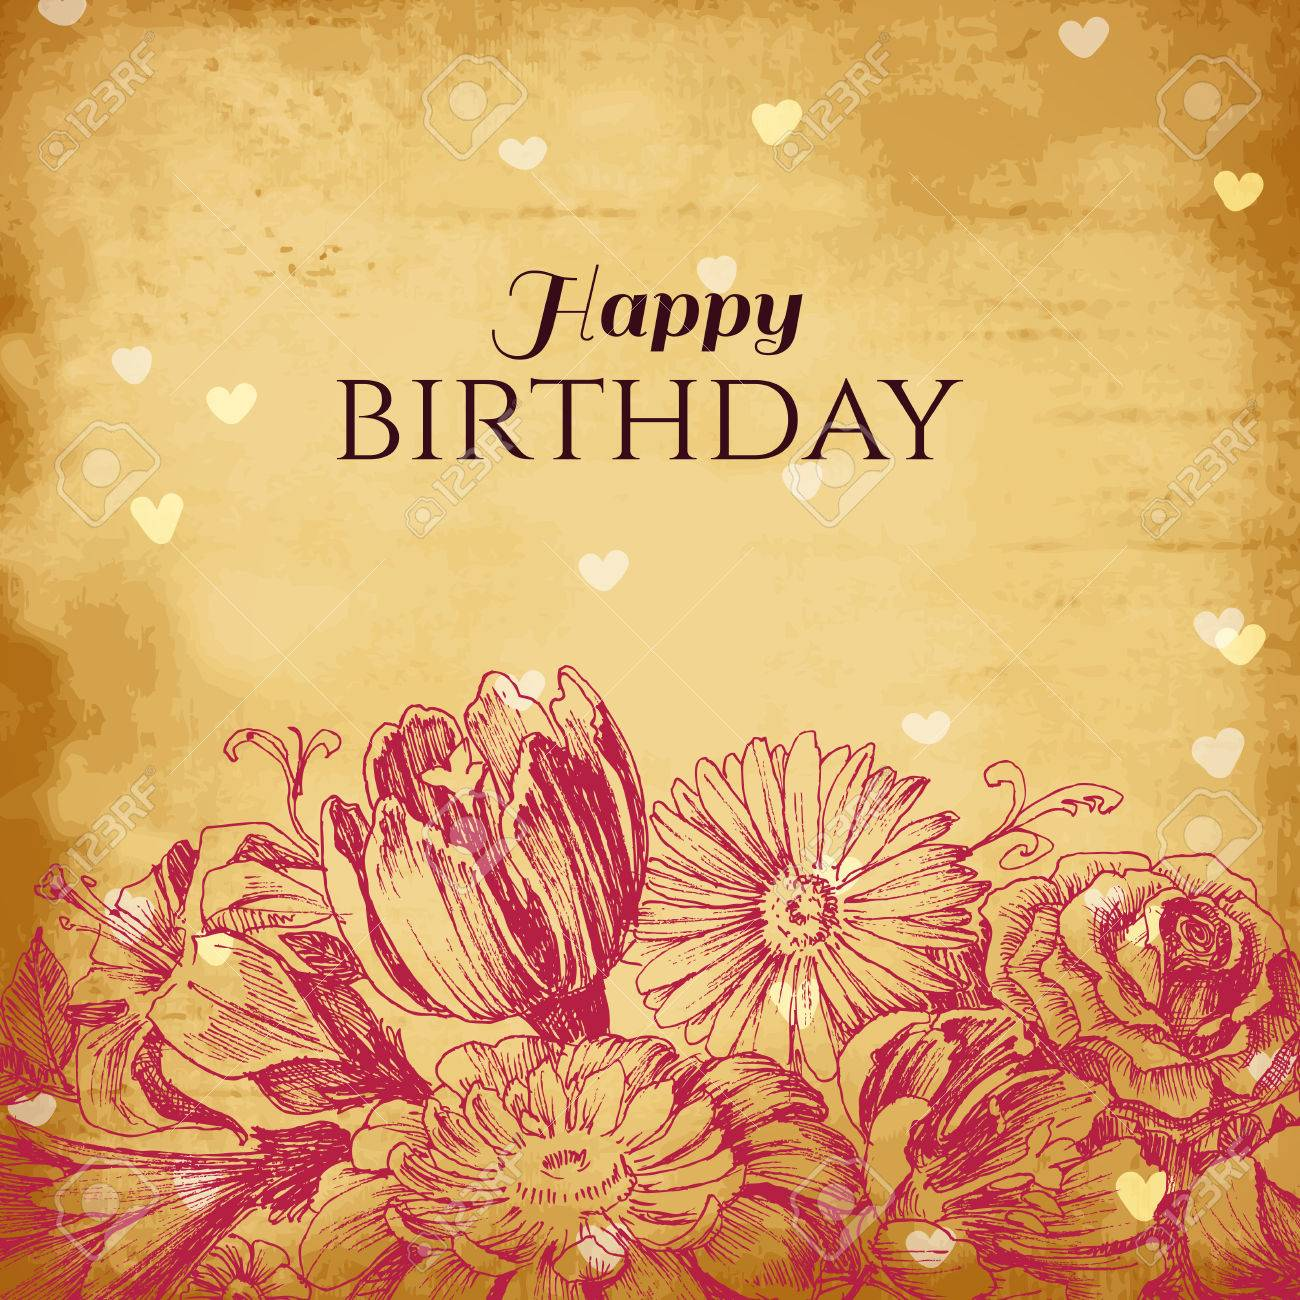 Verjaardagspost voor Marjolijn 37140470-Vintage-floral-background-birthday-card-Stock-Photo